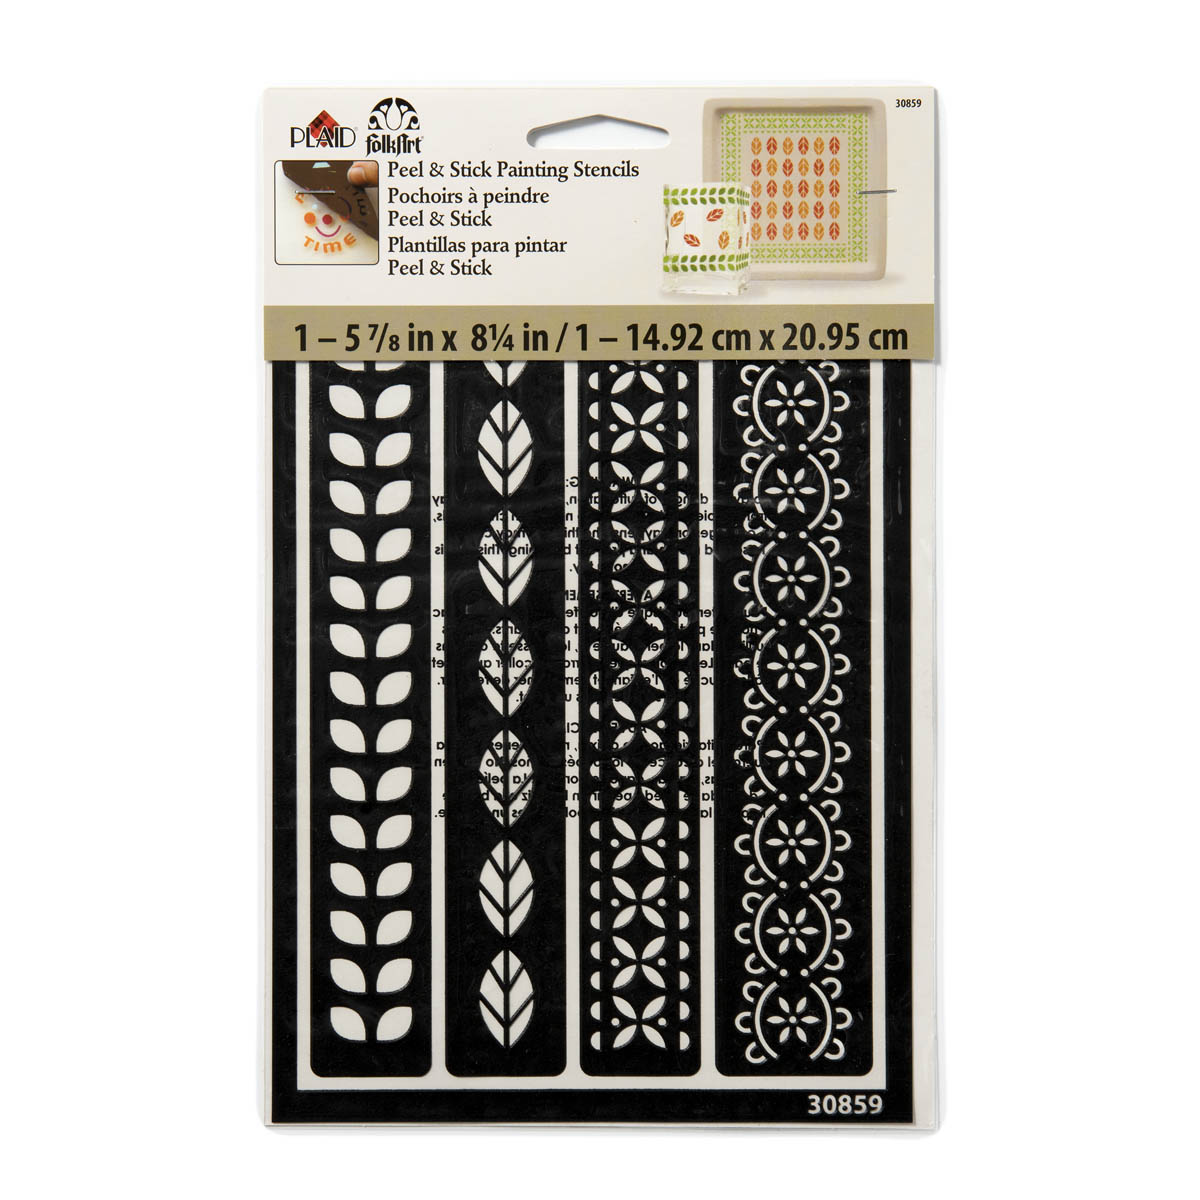 FolkArt ® Peel & Stick Painting Stencils - Borders - 30859